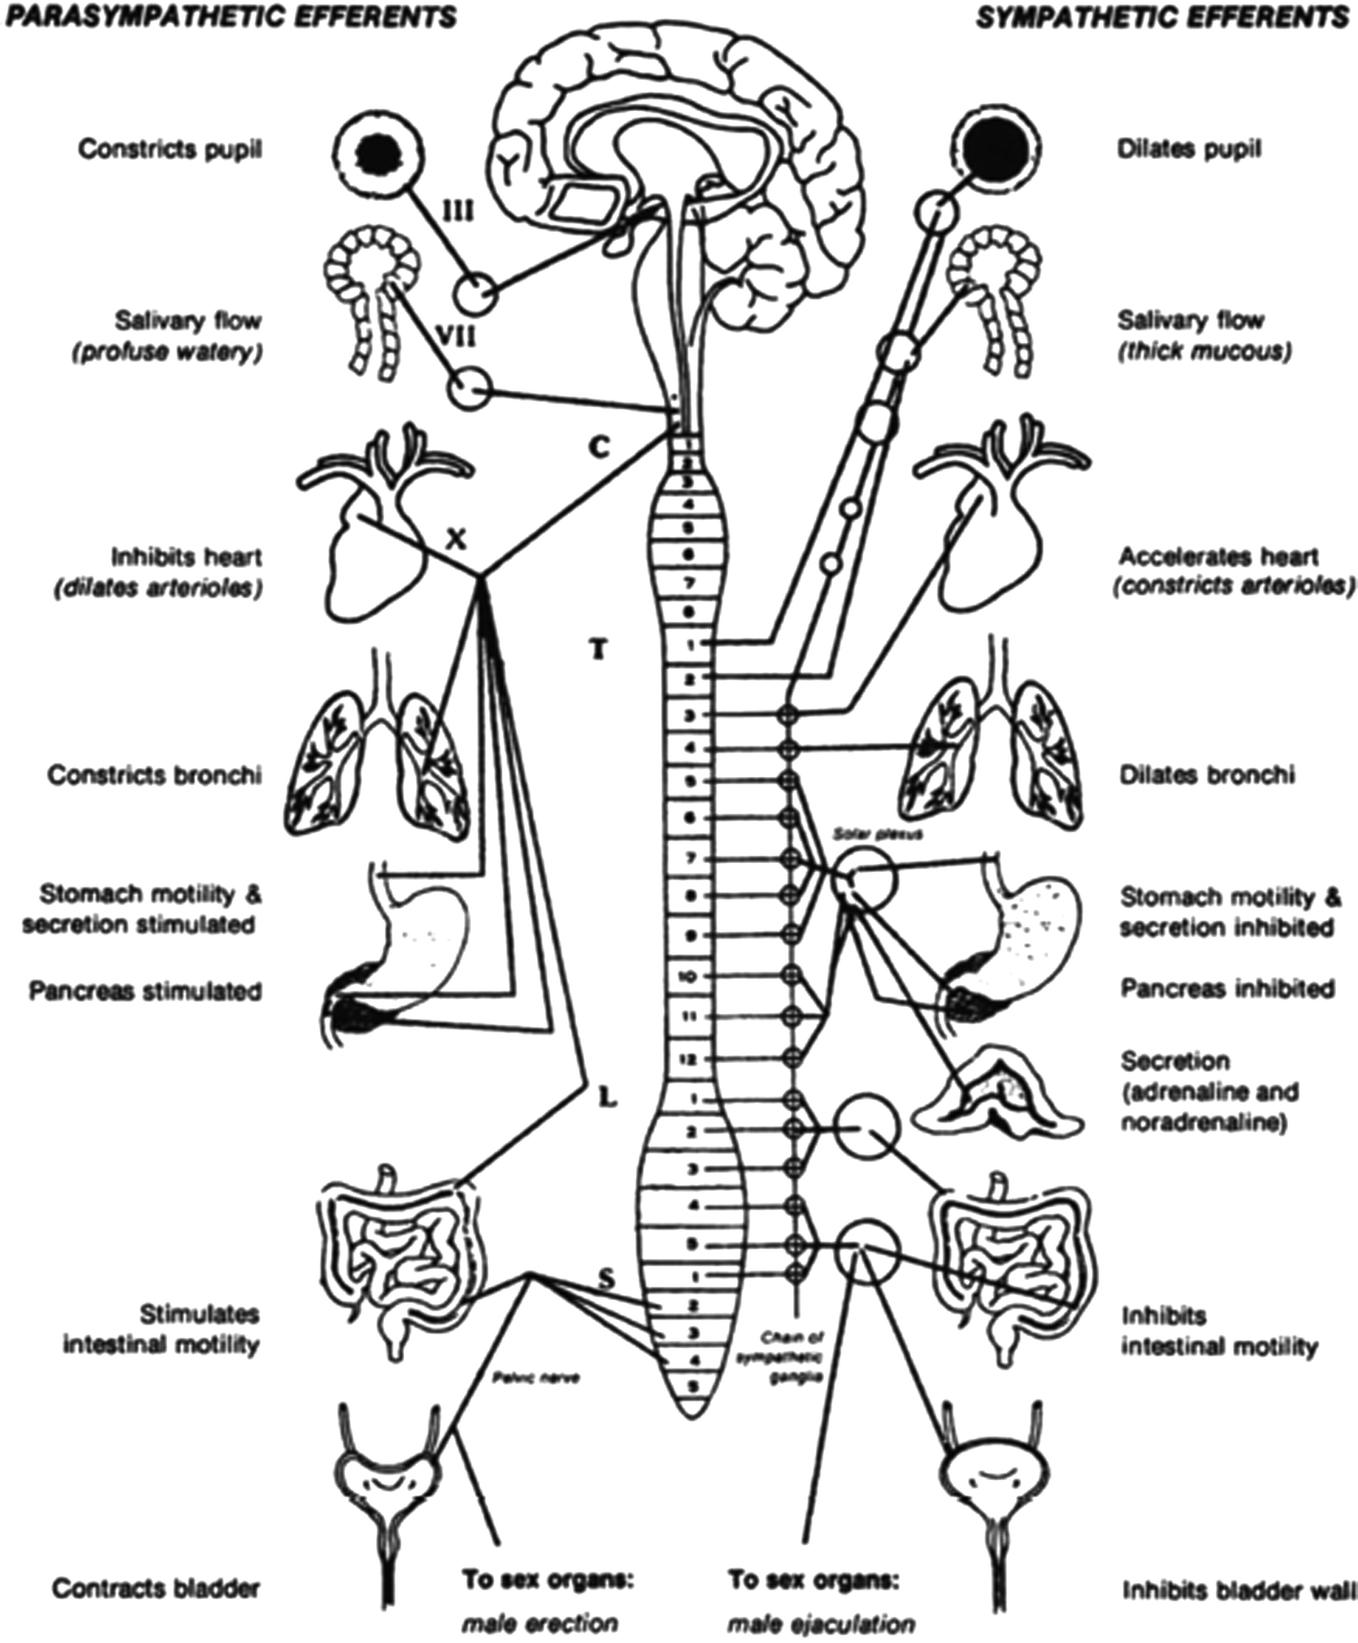 The Anatomy and Physiology of the Human Stress Response